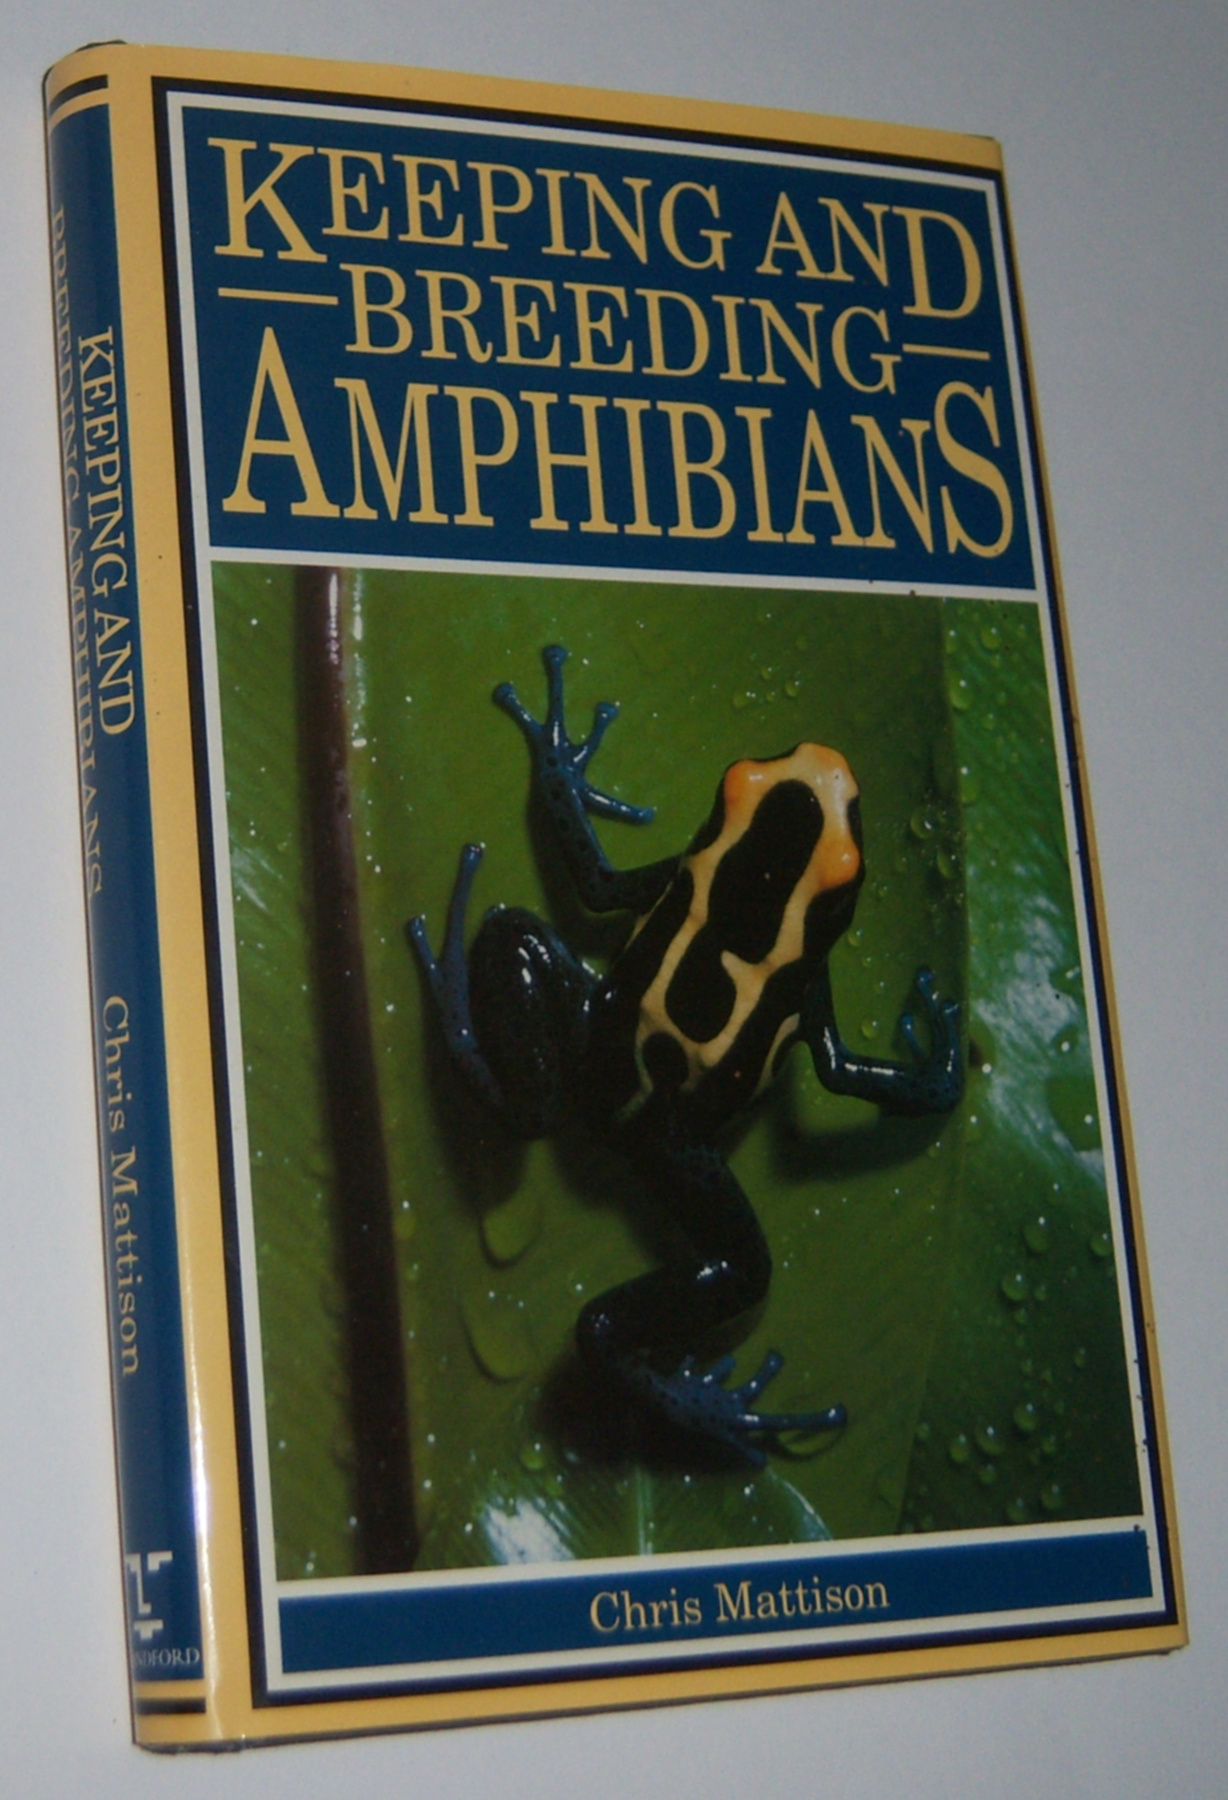 Image for KEEPING AND BREEDING AMPHIBIANS: Caecilians, Newts, Salamanders, Frogs and Toads